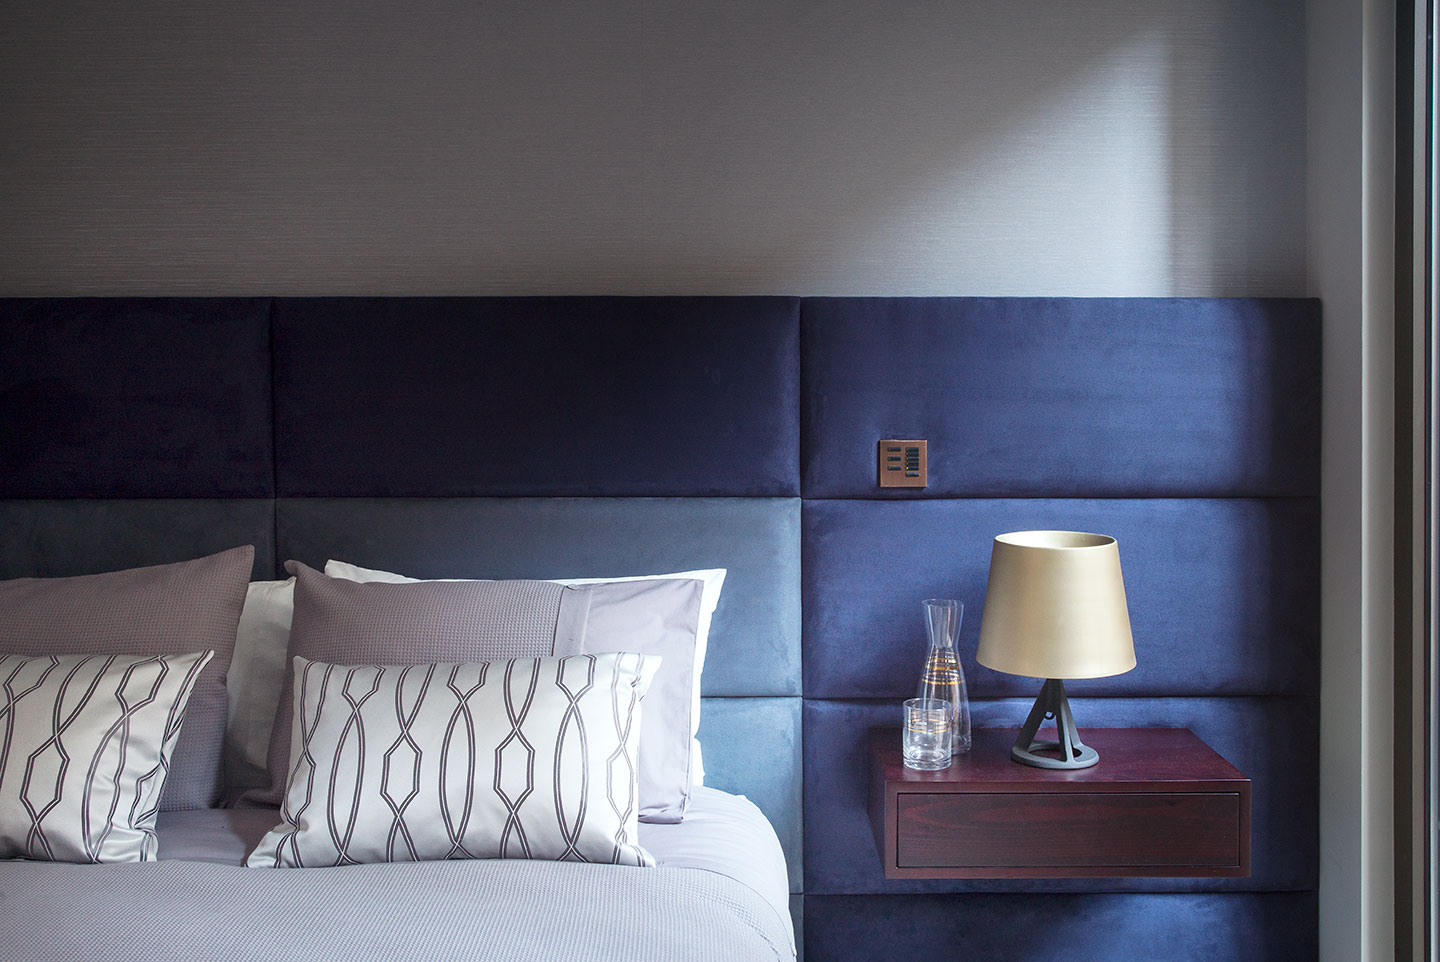 Blue headboard and lamp in a luxury designed interior bedroom